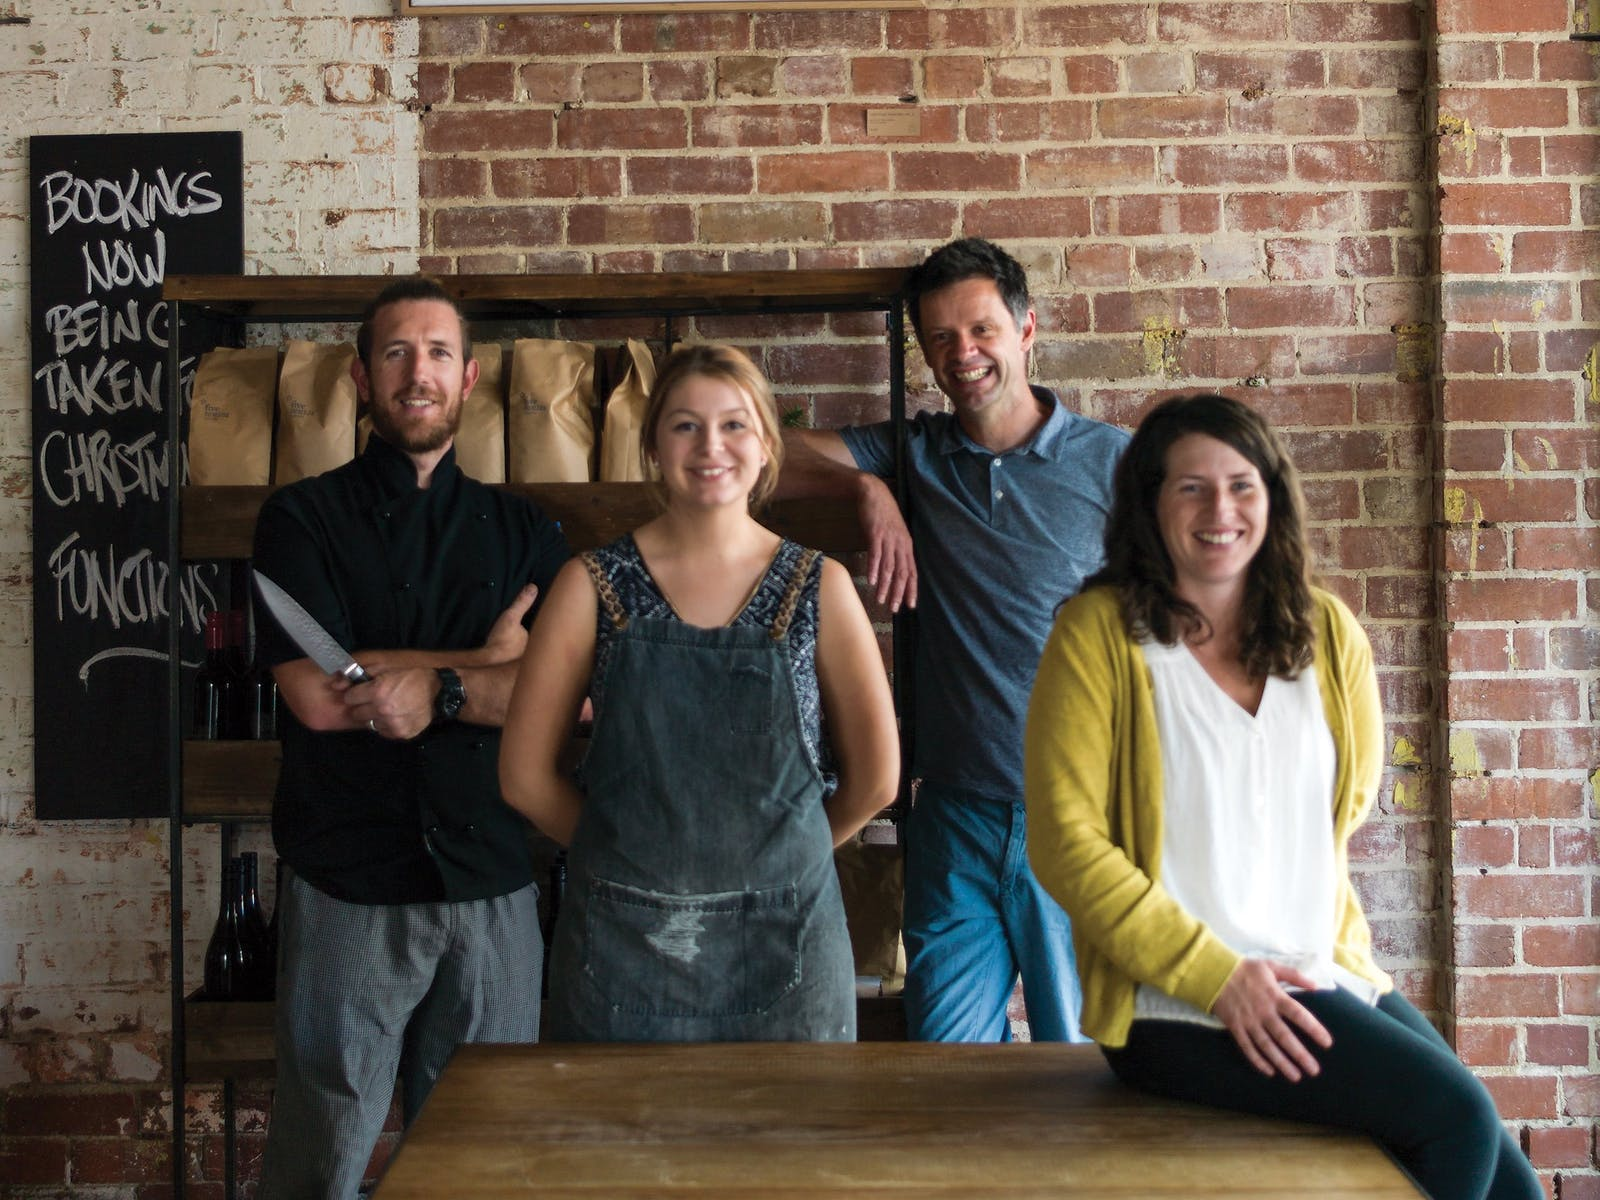 The Coffee Collective, James Archibald, Ella Godbold, Visit Gippsland, Inspired by Gippsland